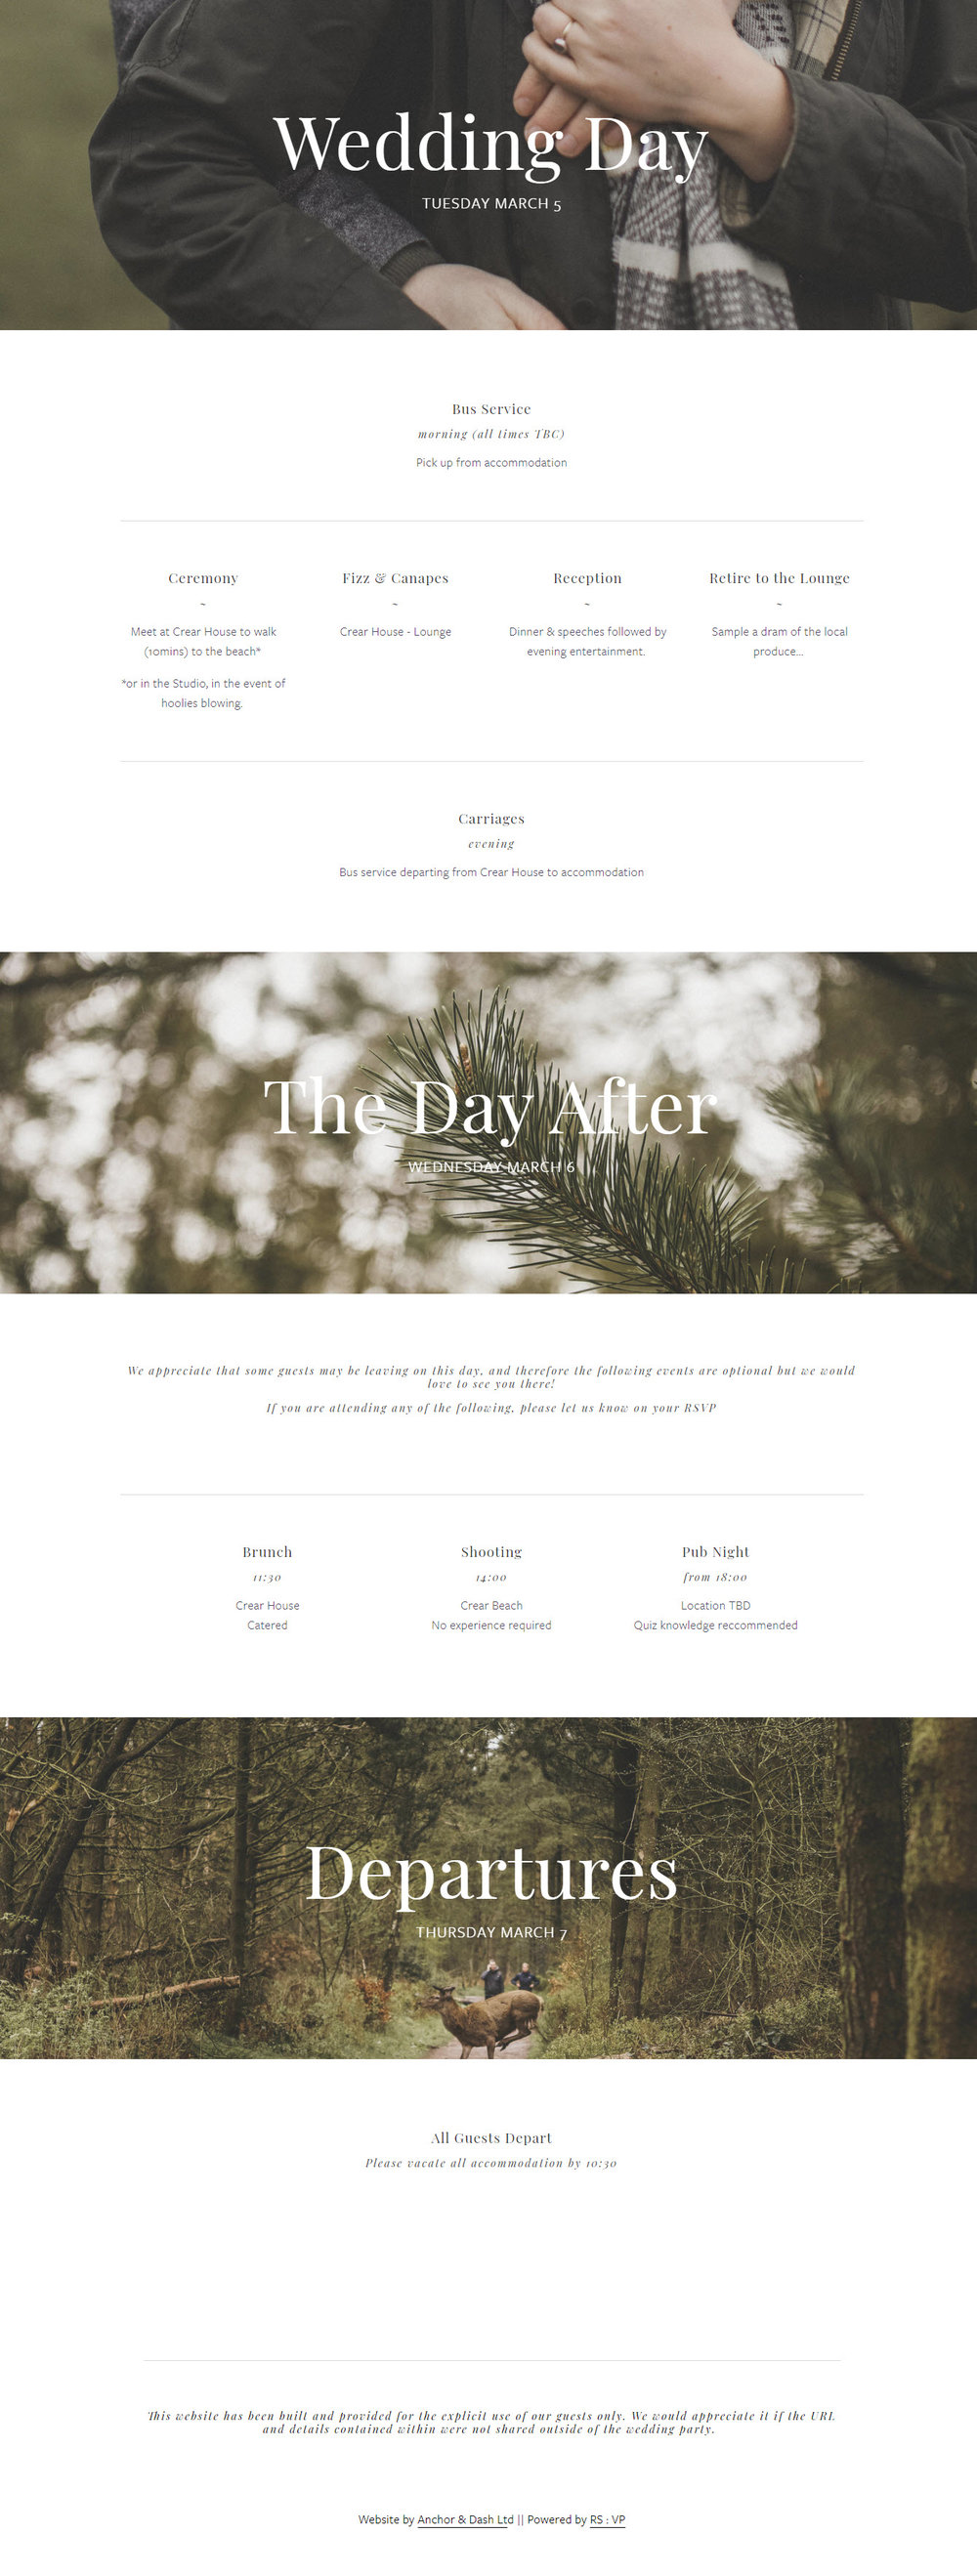 Custom Destination Wedding Website